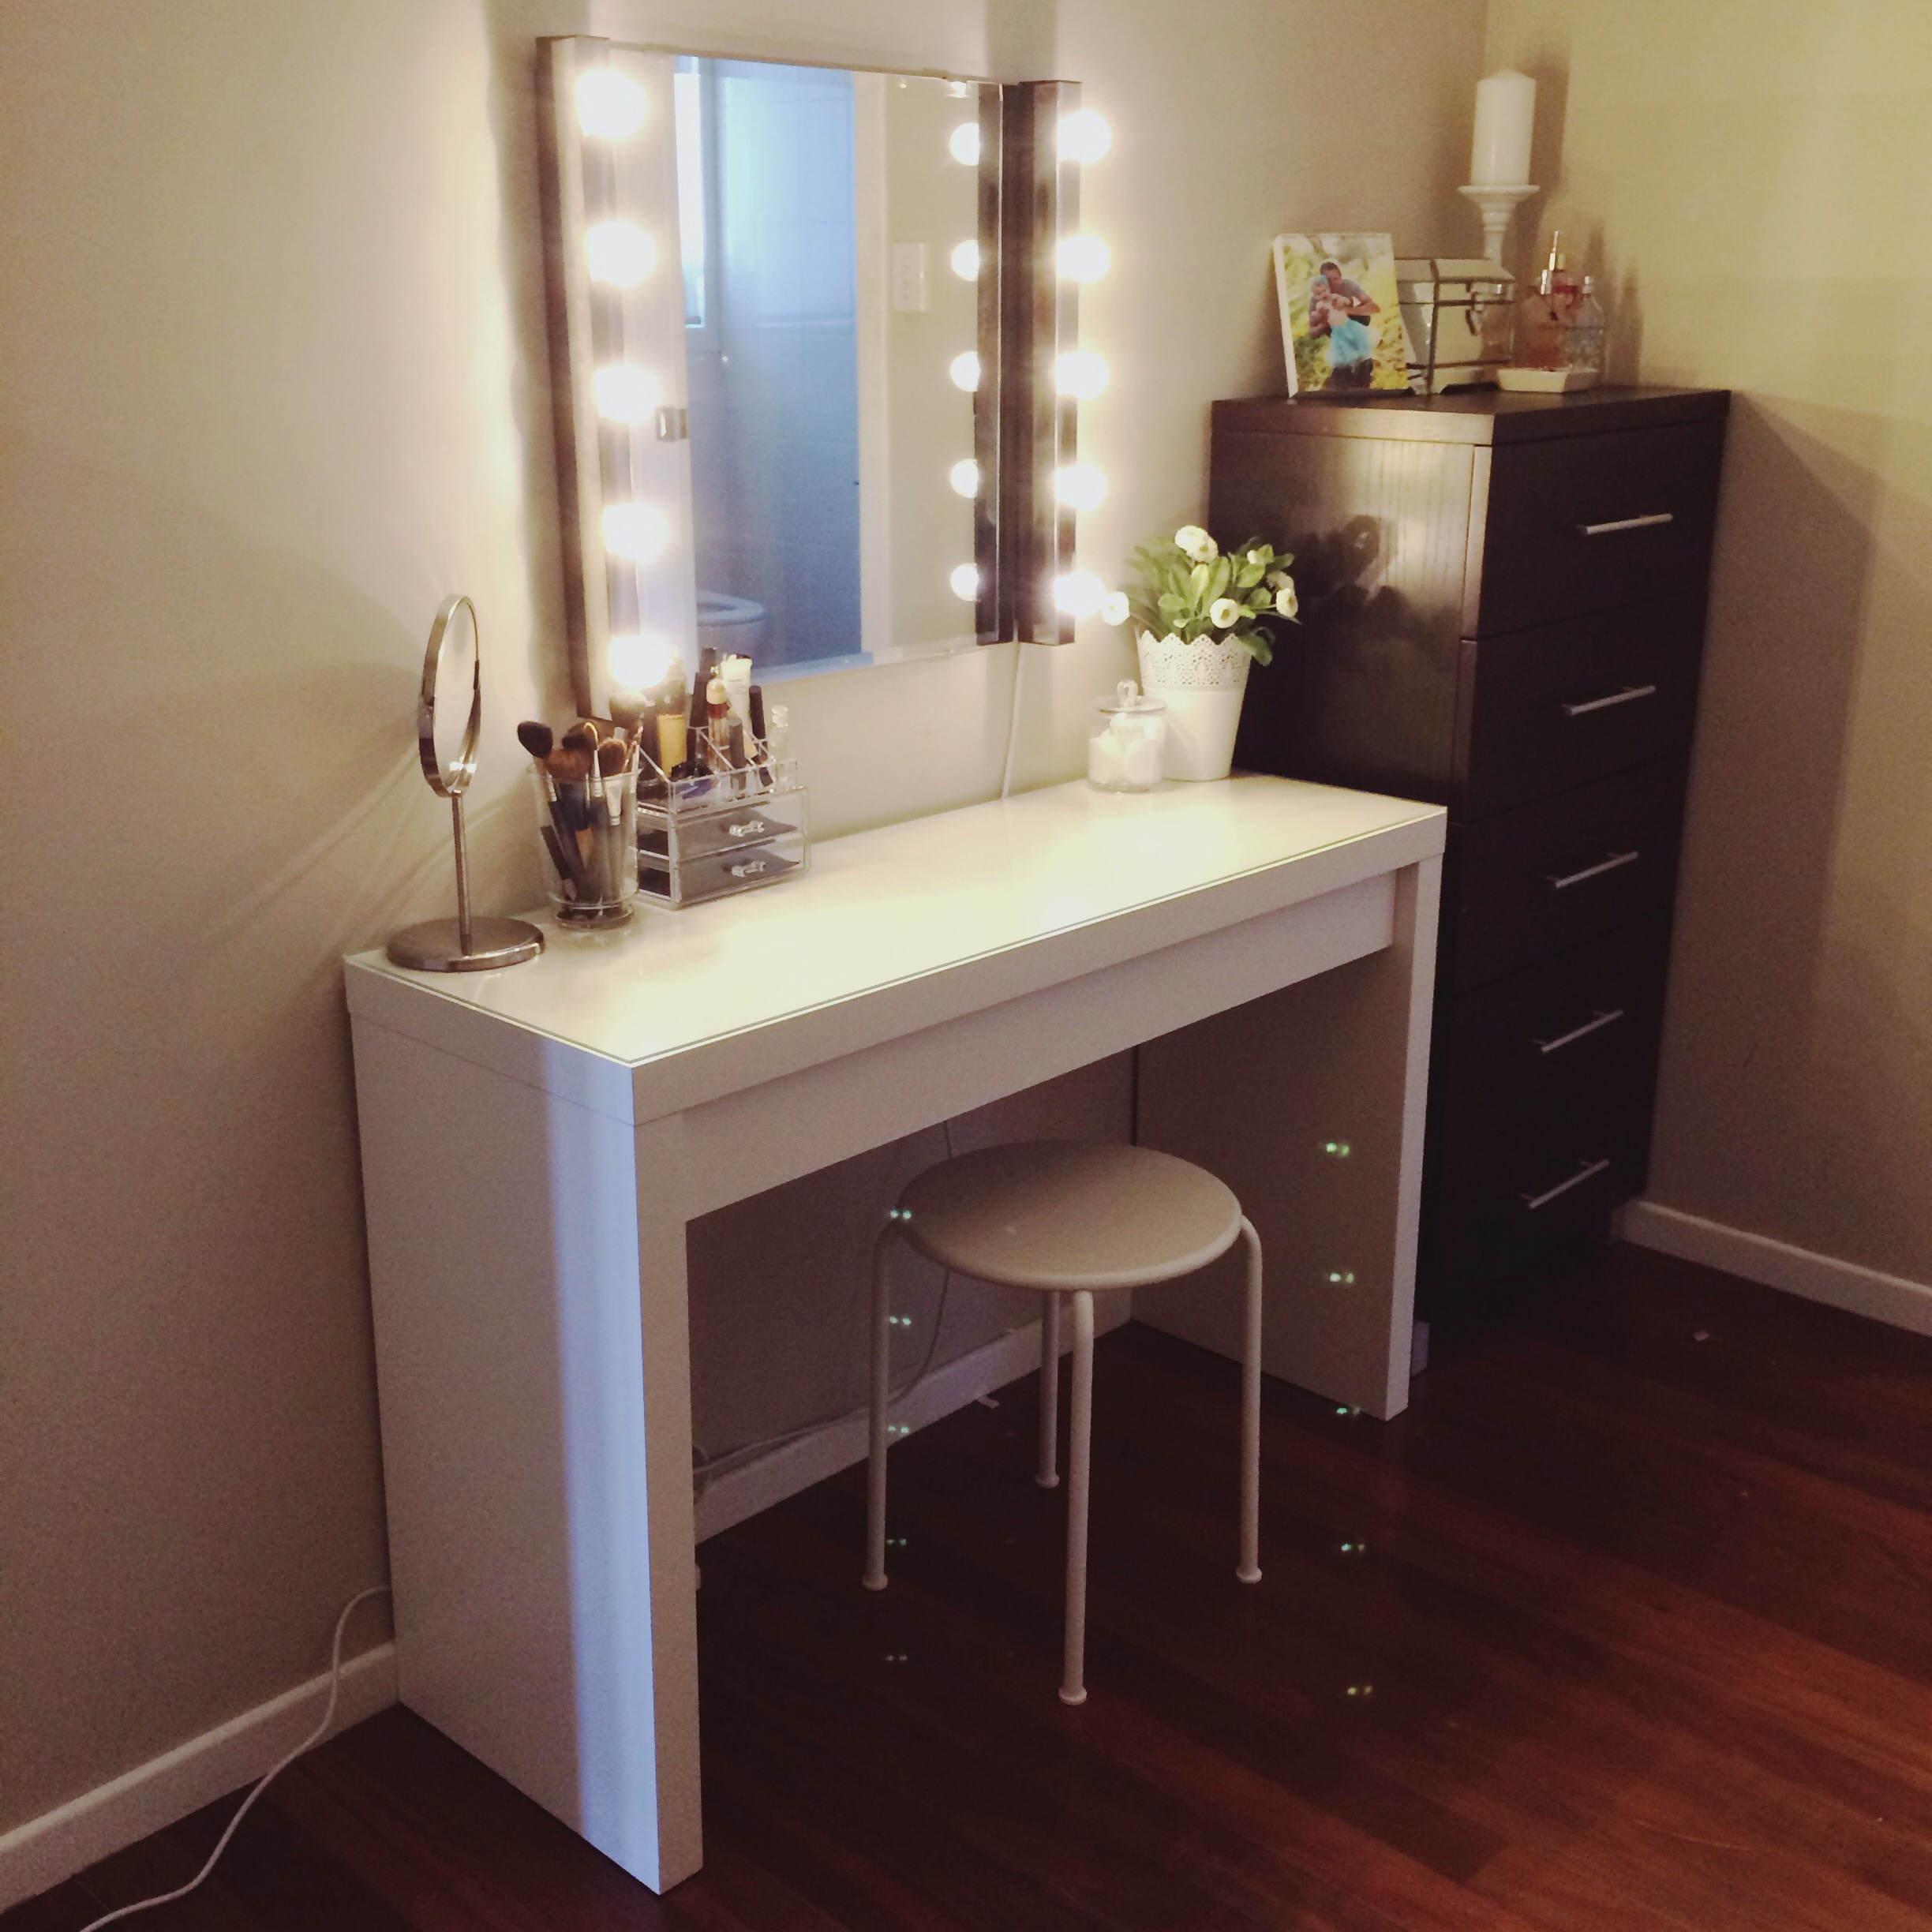 Diy Vanity California Cupcake Pinteres Pertaining To Illuminated Dressing Table Mirrors (Image 9 of 15)